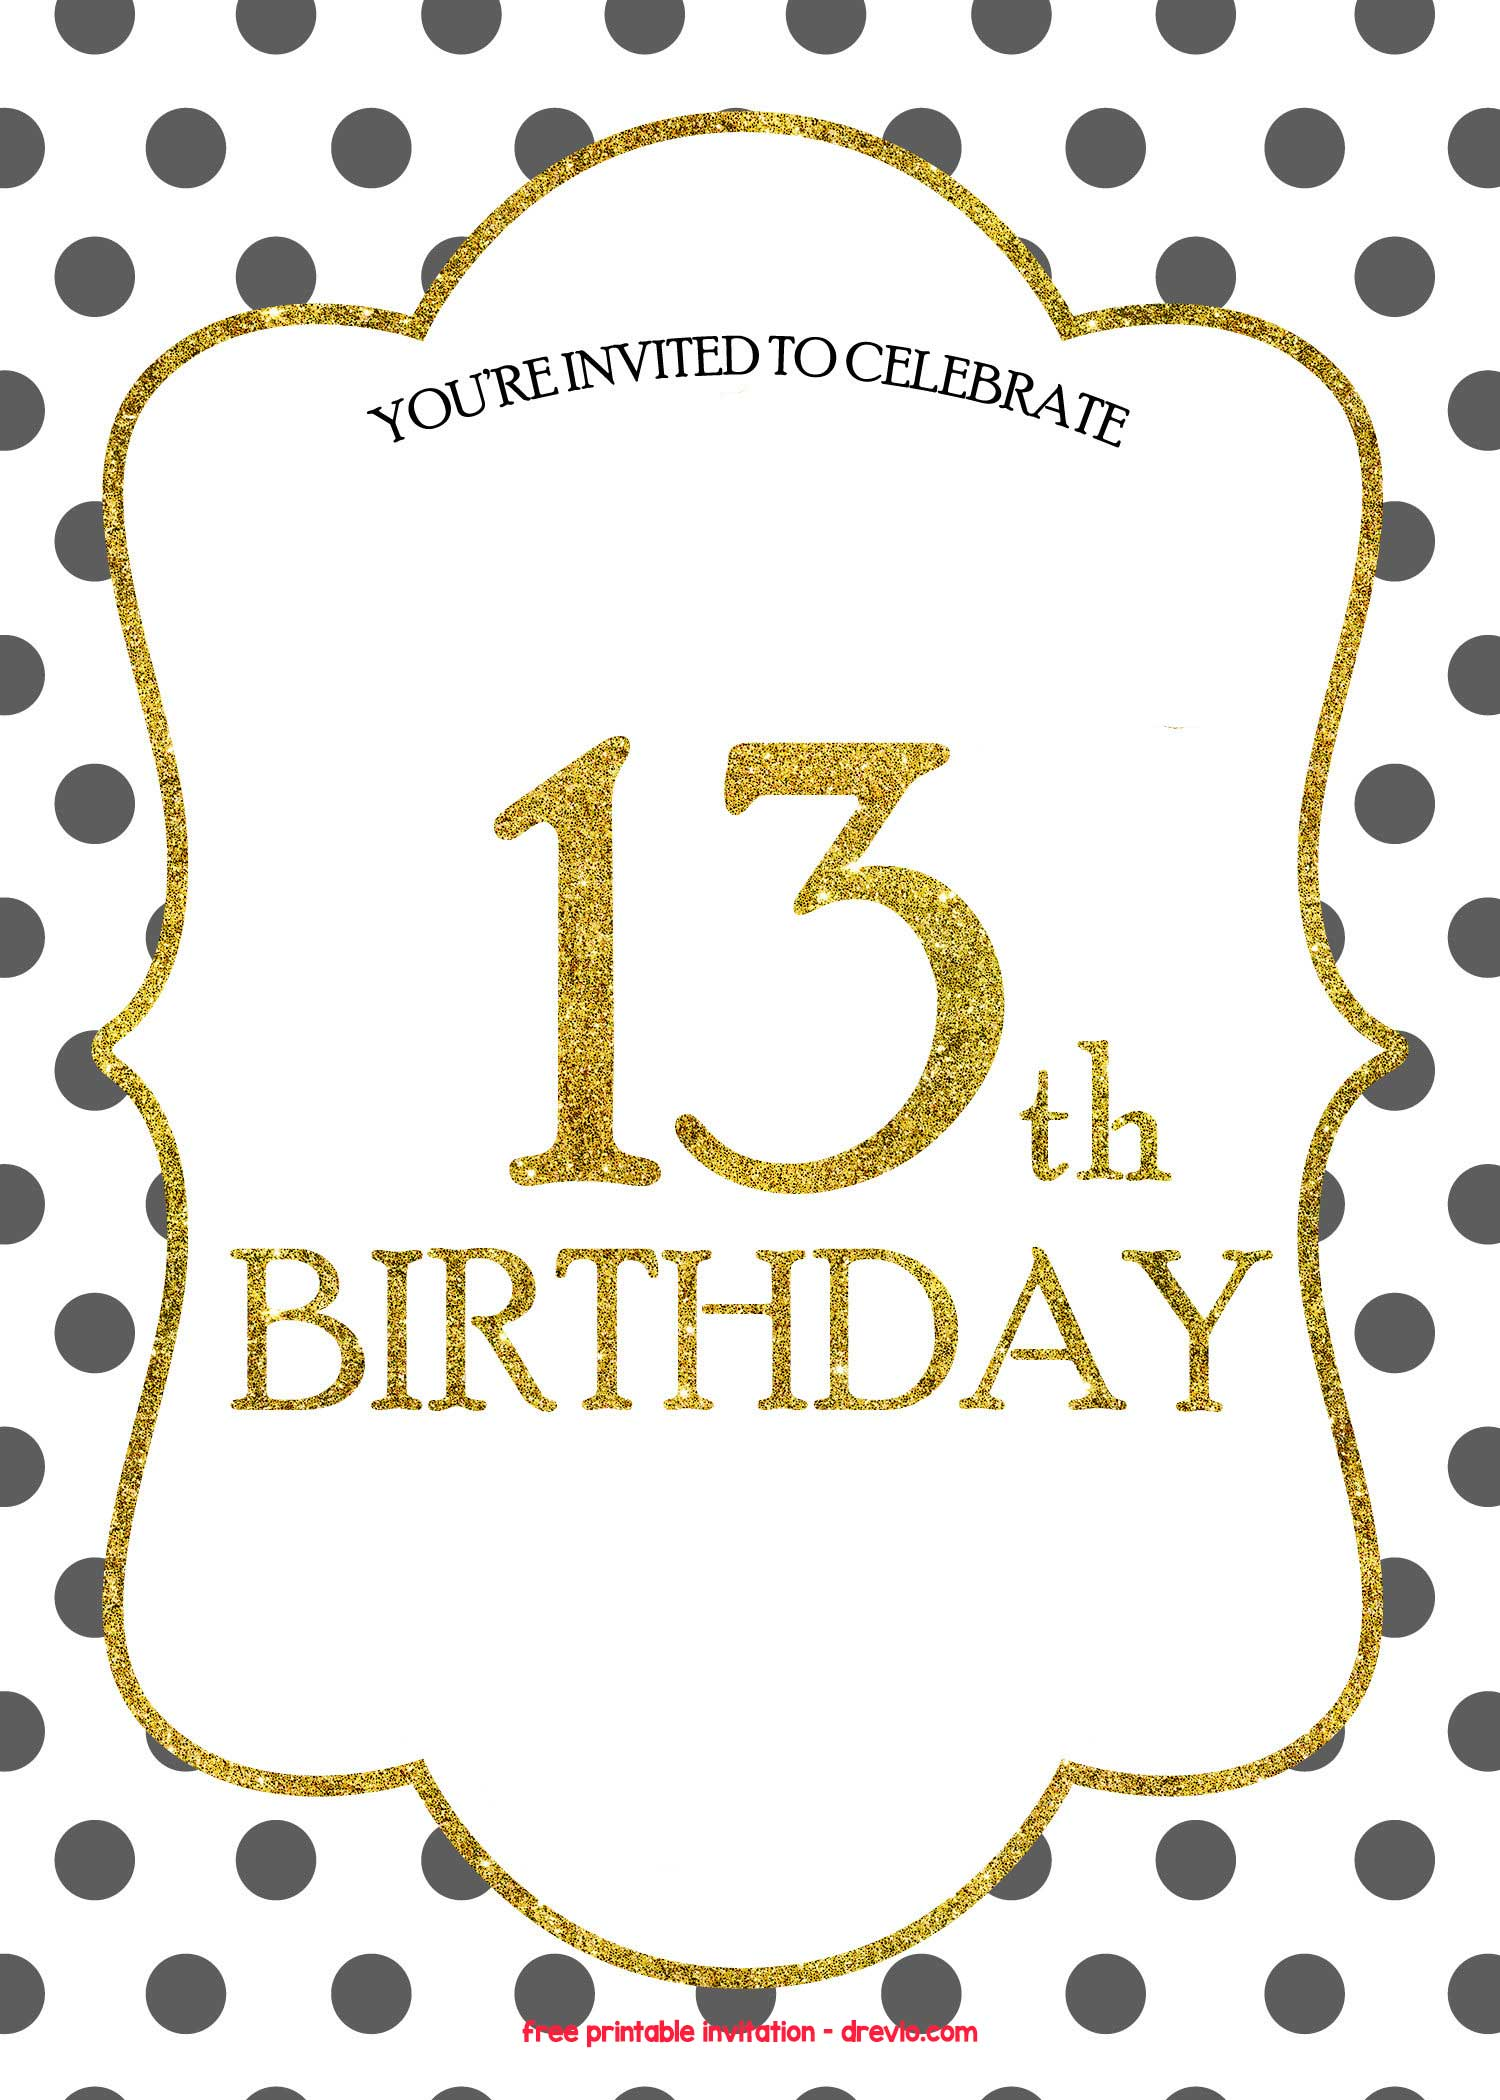 It's just a photo of Priceless Free Printable Birthday Invitation Templates